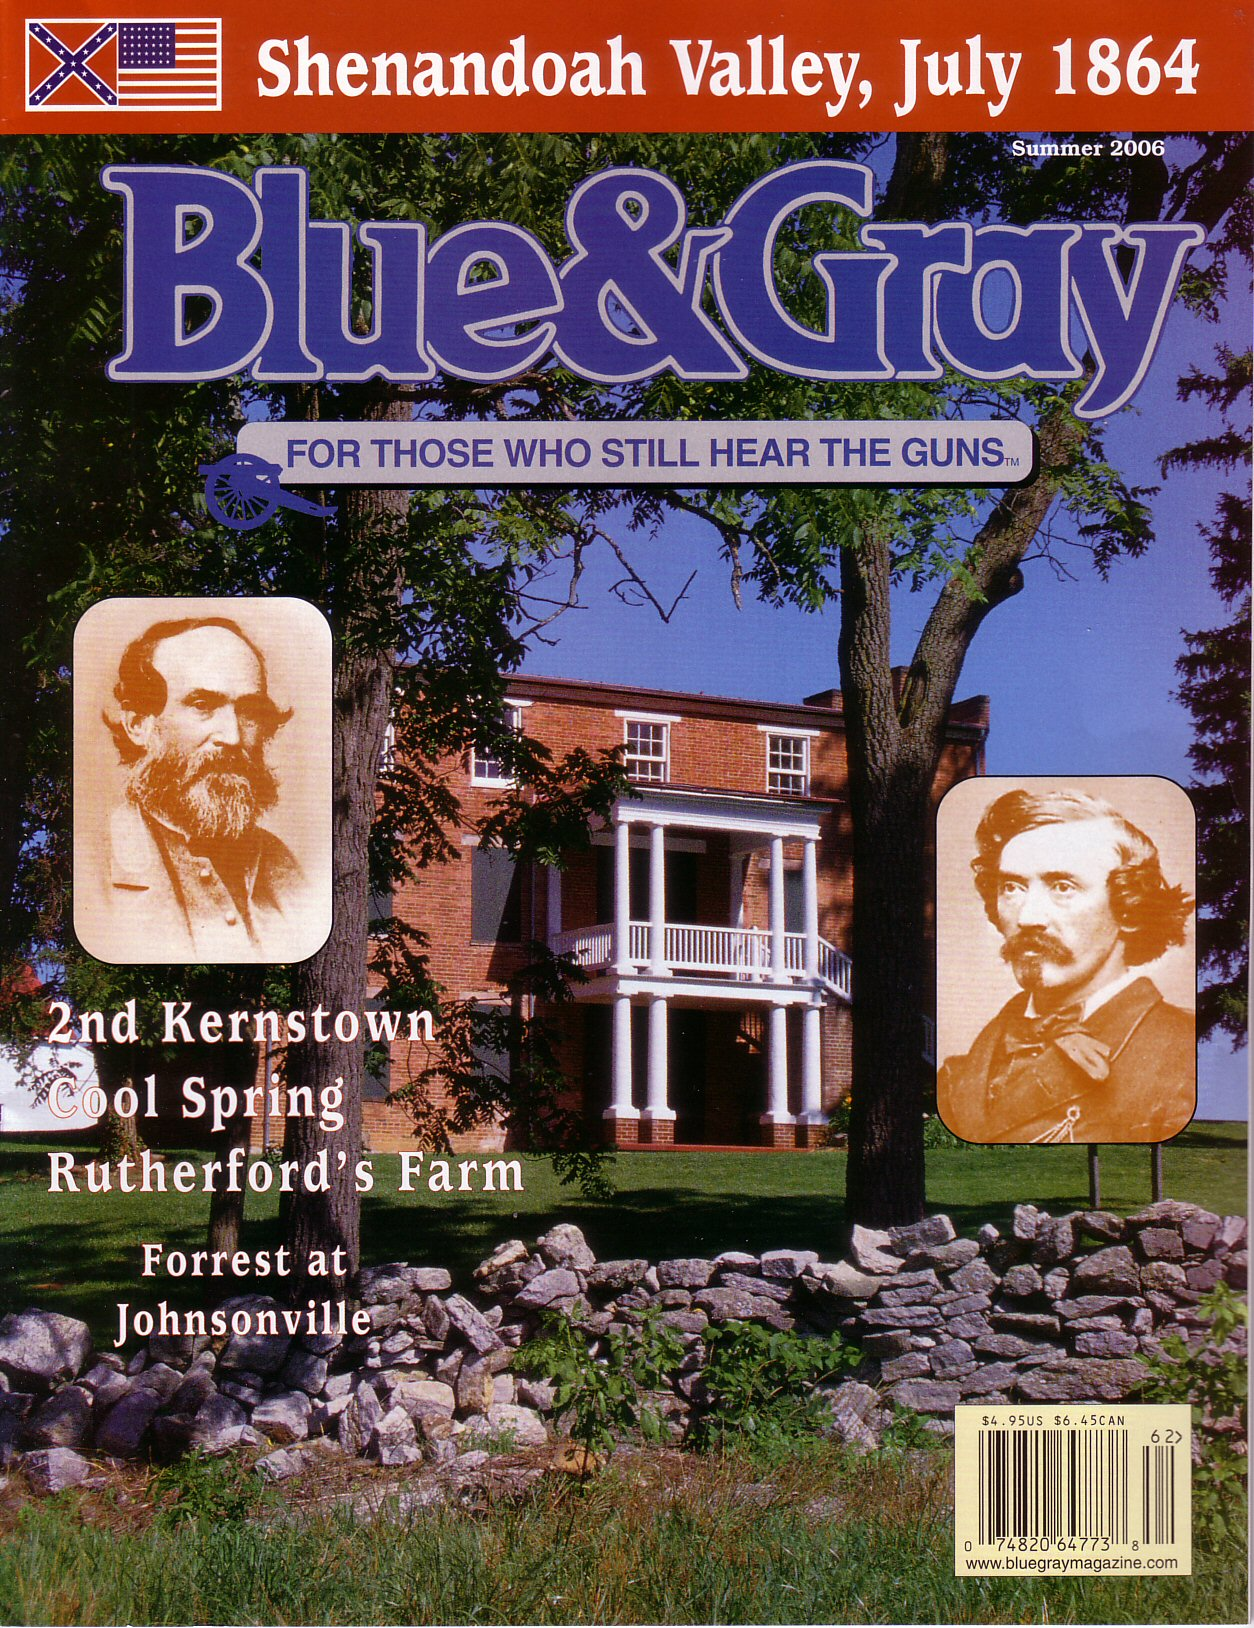 Blue & Gray Magazine, Volume 23, Number 3 (Summer 2006)